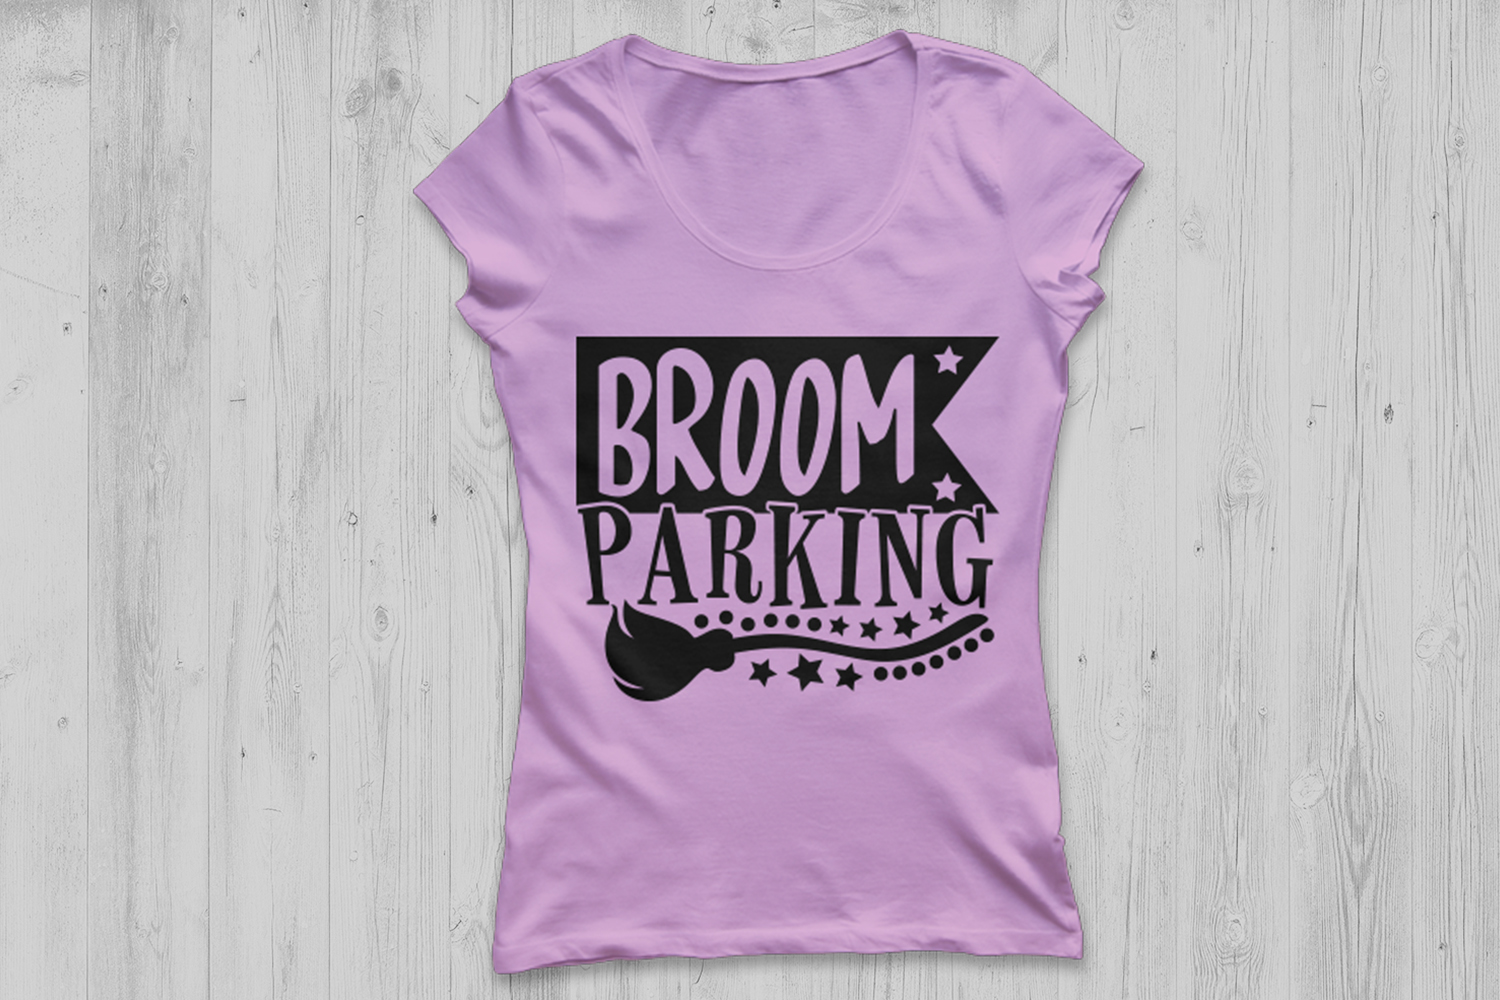 Broom Parking Svg, Halloween Svg, Witch Svg, Witch Broom Svg example image 2